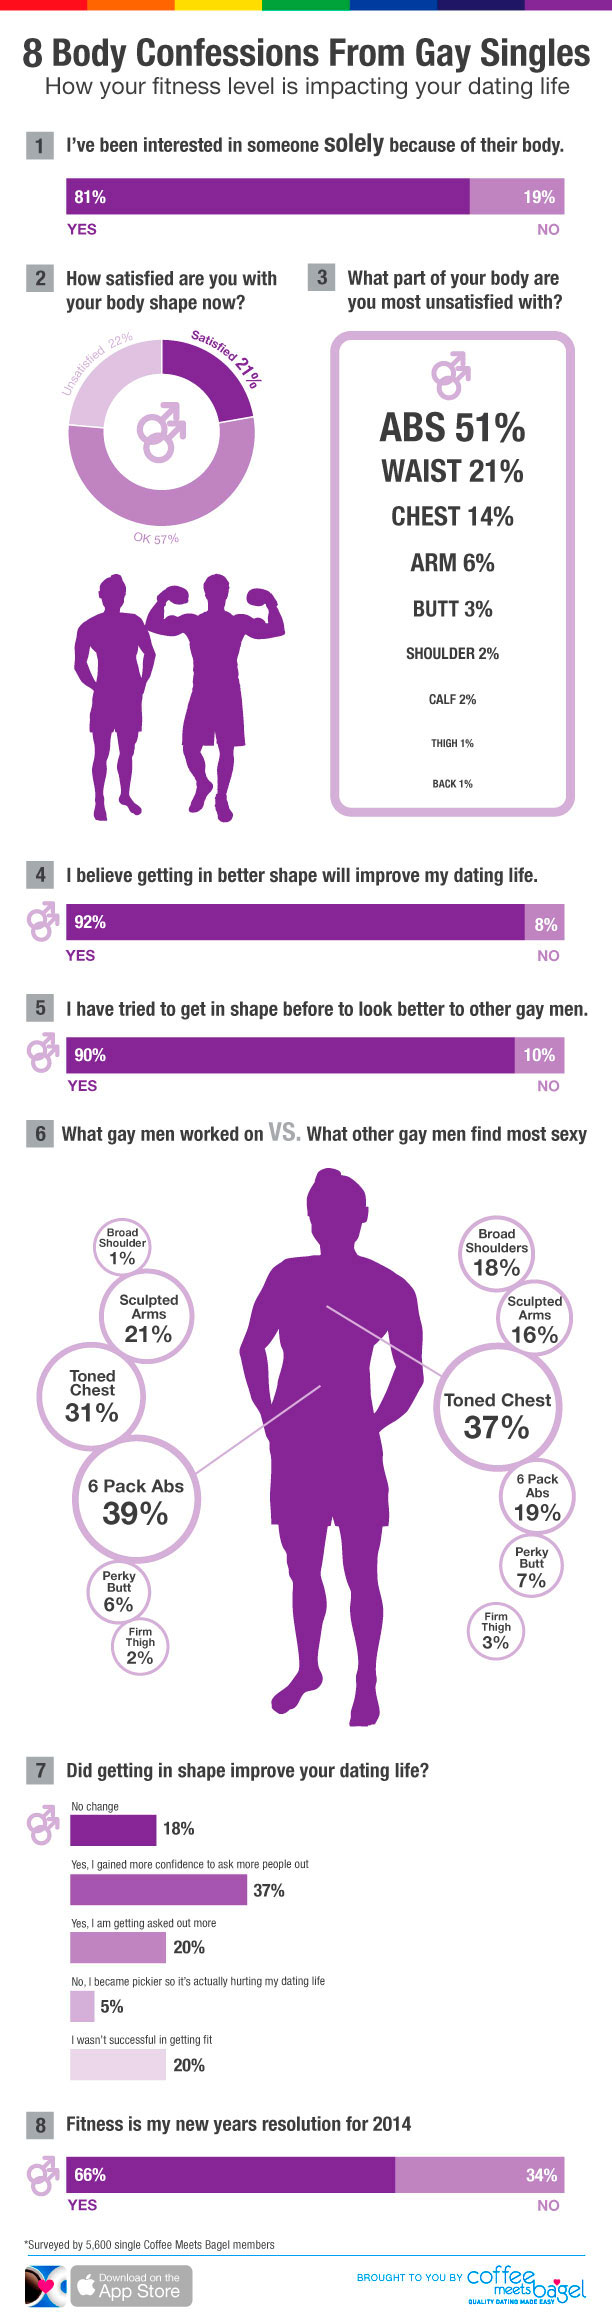 Gay Singles' Guide to New Year's Resolution around Fitness